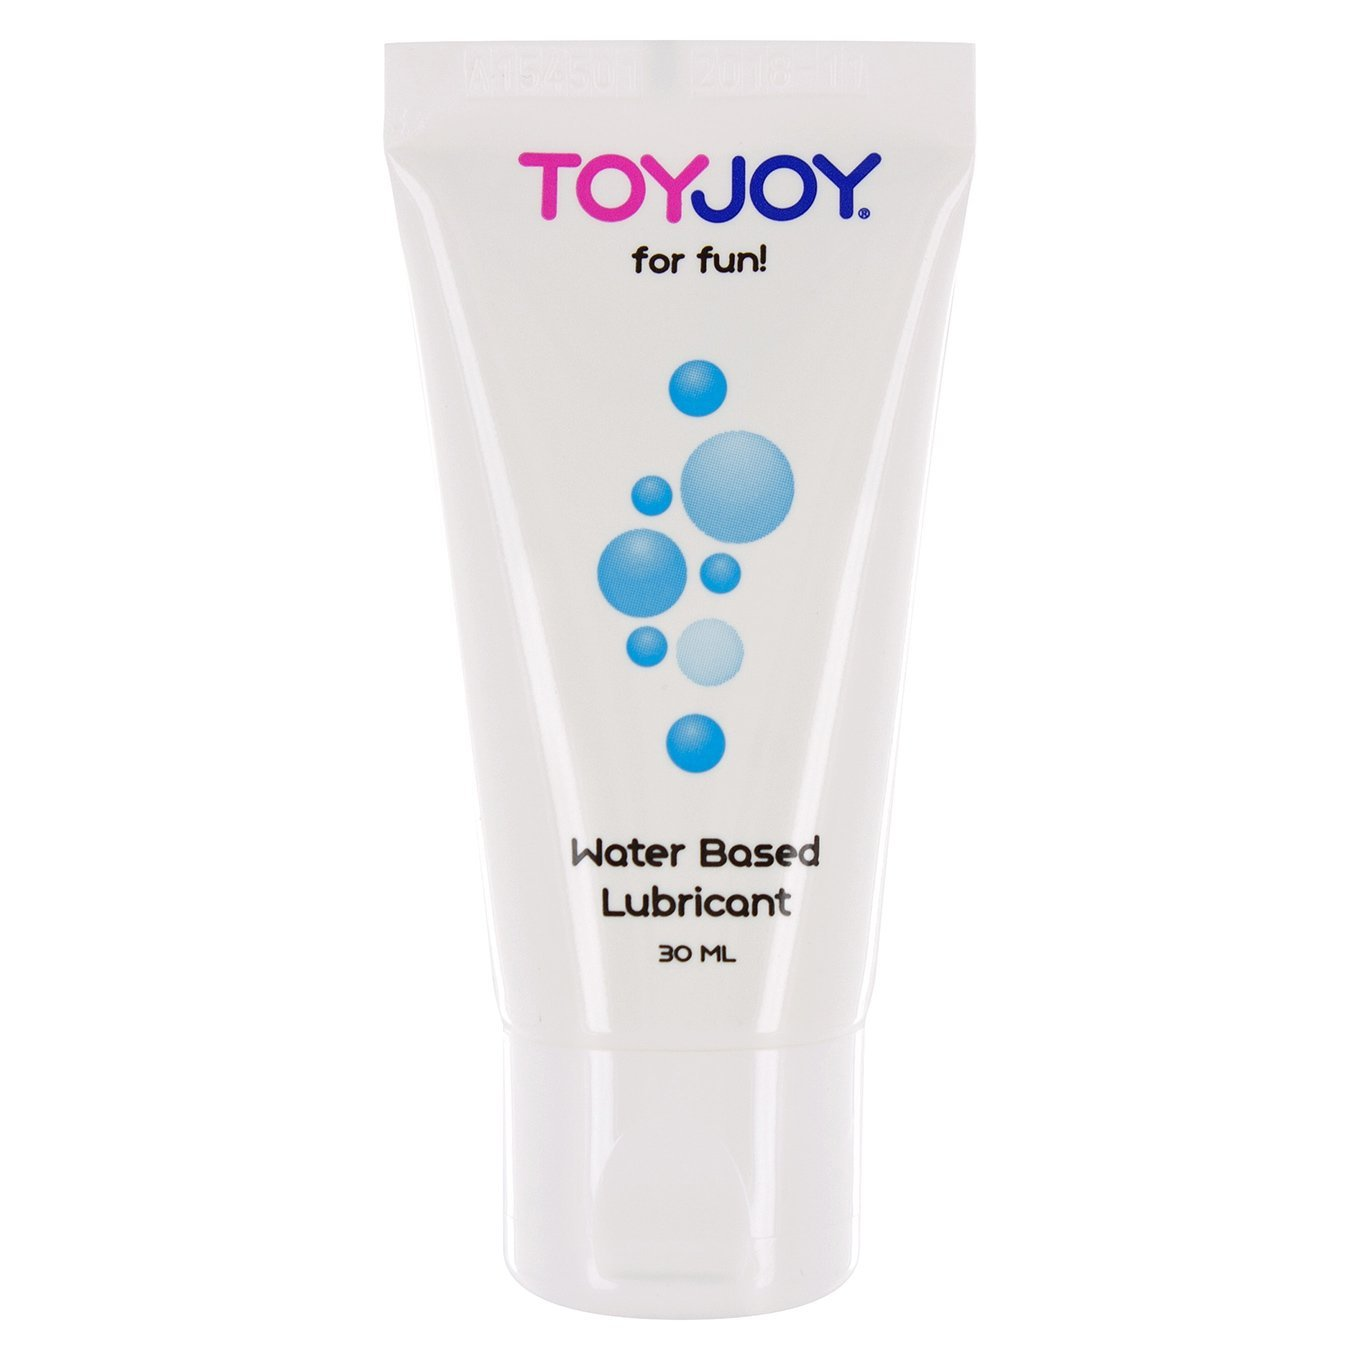 ToyJoy - Waterbased Lubricant 30 ml (Lube) Lube (Water Based) Singapore